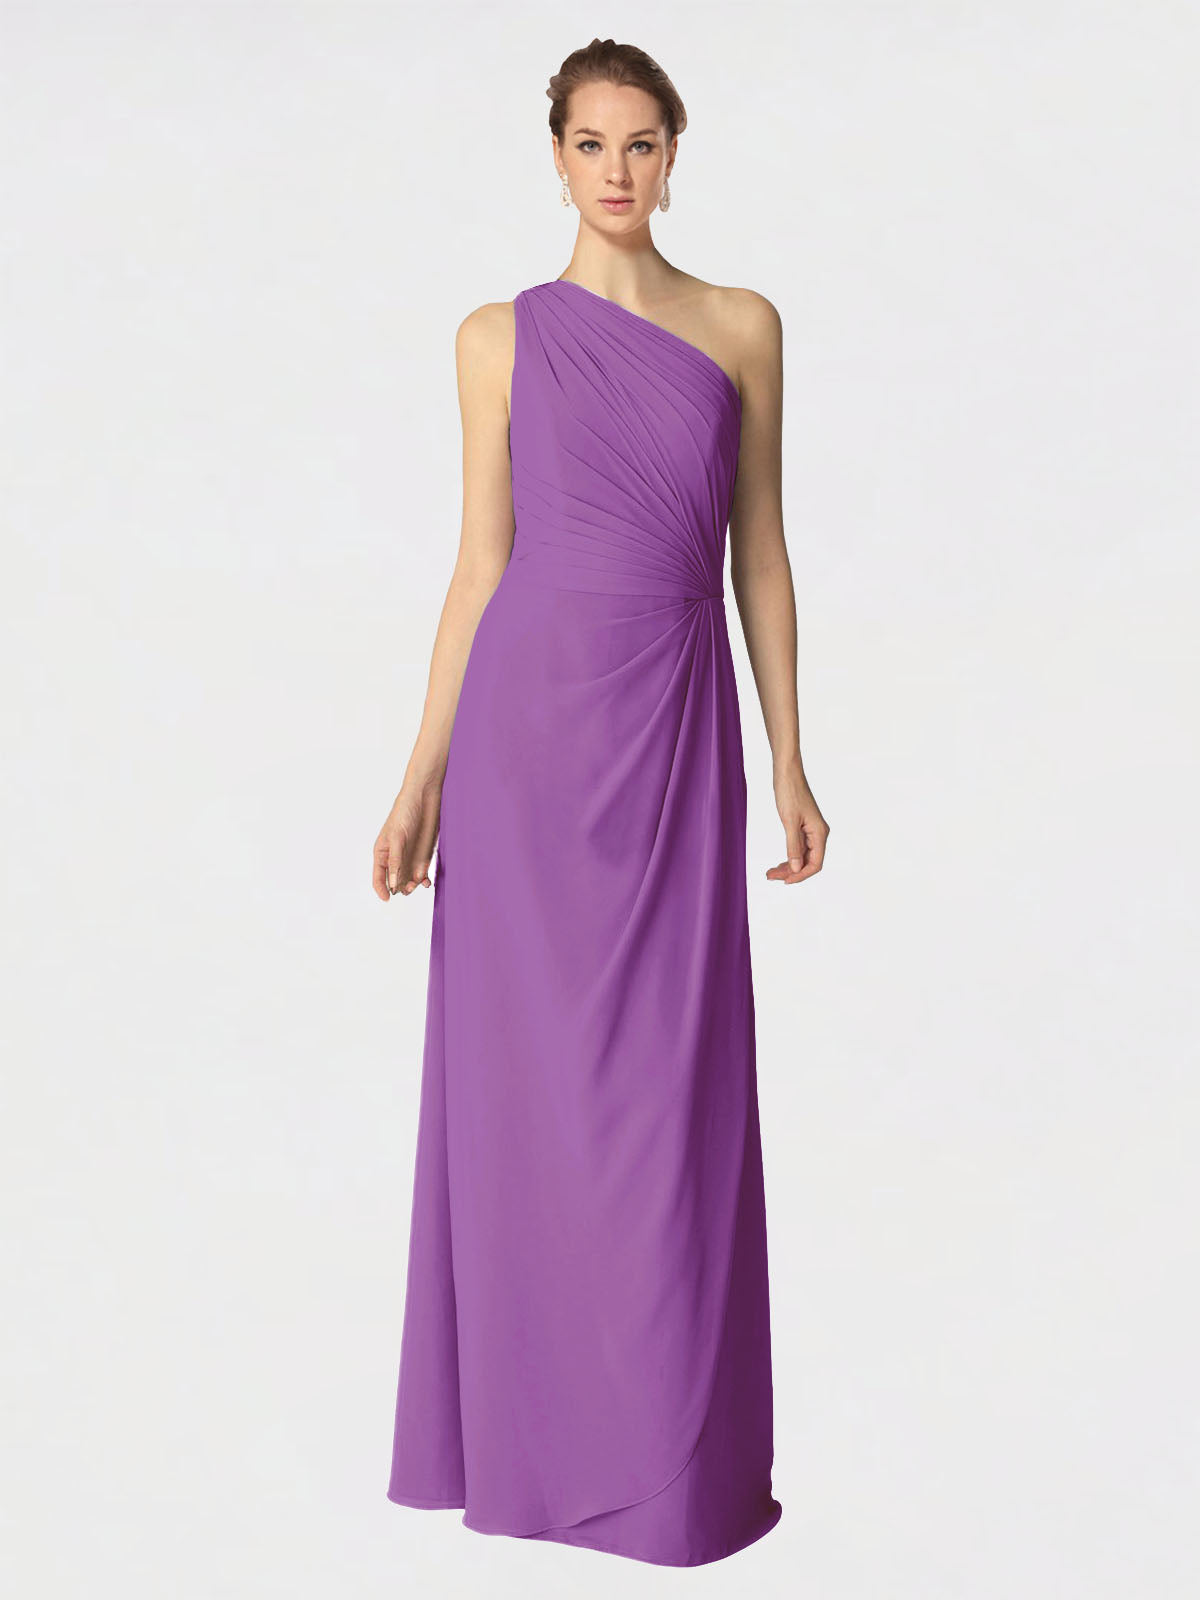 Long A-Line One Shoulder Sleeveless Dahlia Chiffon Bridesmaid Dress Aurora